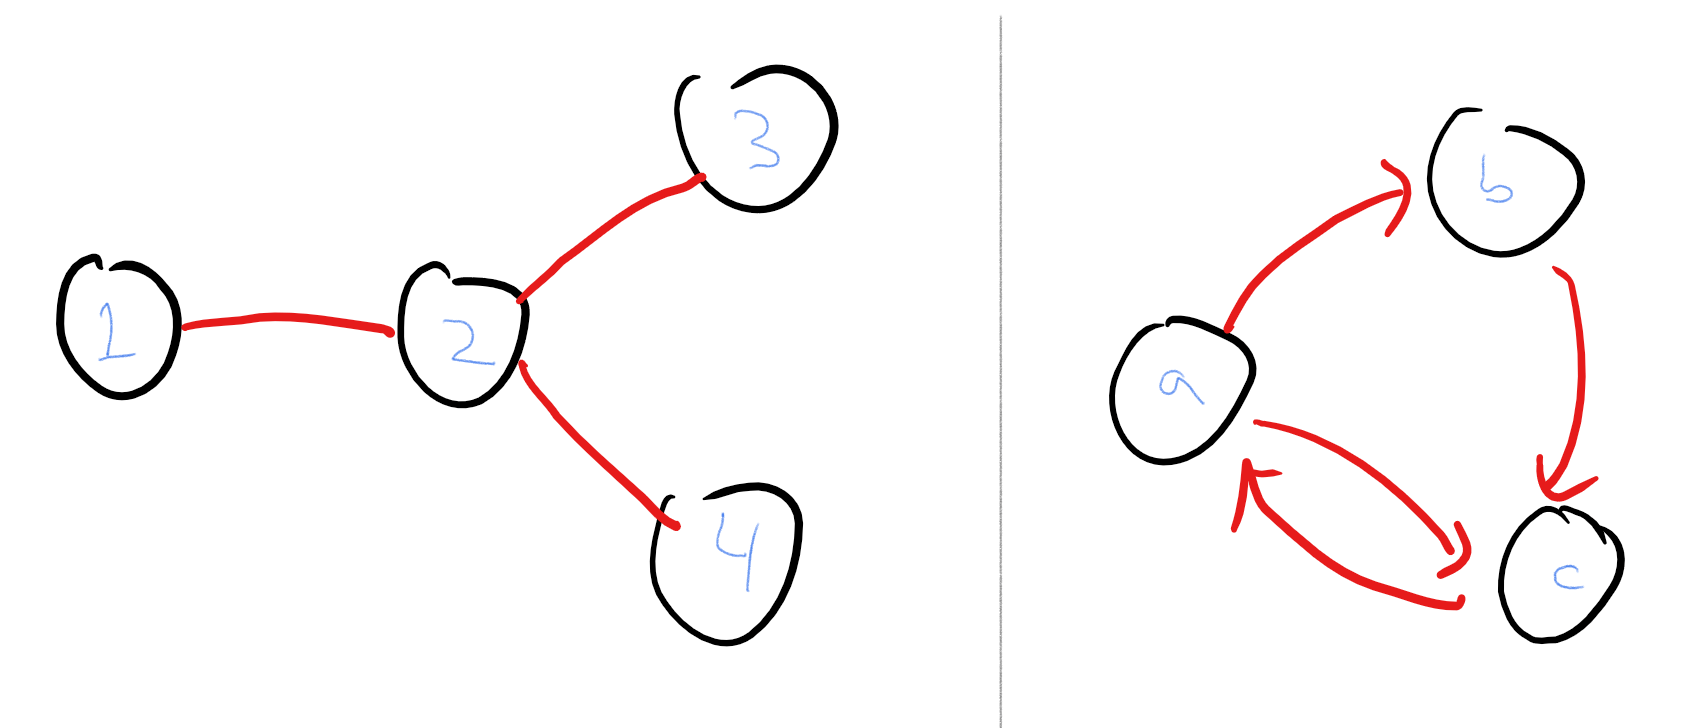 1.5: An example of an undirected and a directed graph. The undirected graph has vertex set \{1,2,3,4\} and edge set \{ \{1,2\},\{2,3\},\{2,4\} \}. The directed graph has vertex set \{a,b,c\} and the edge set \{ (a,b),(b,c),(c,a),(a,c) \}.